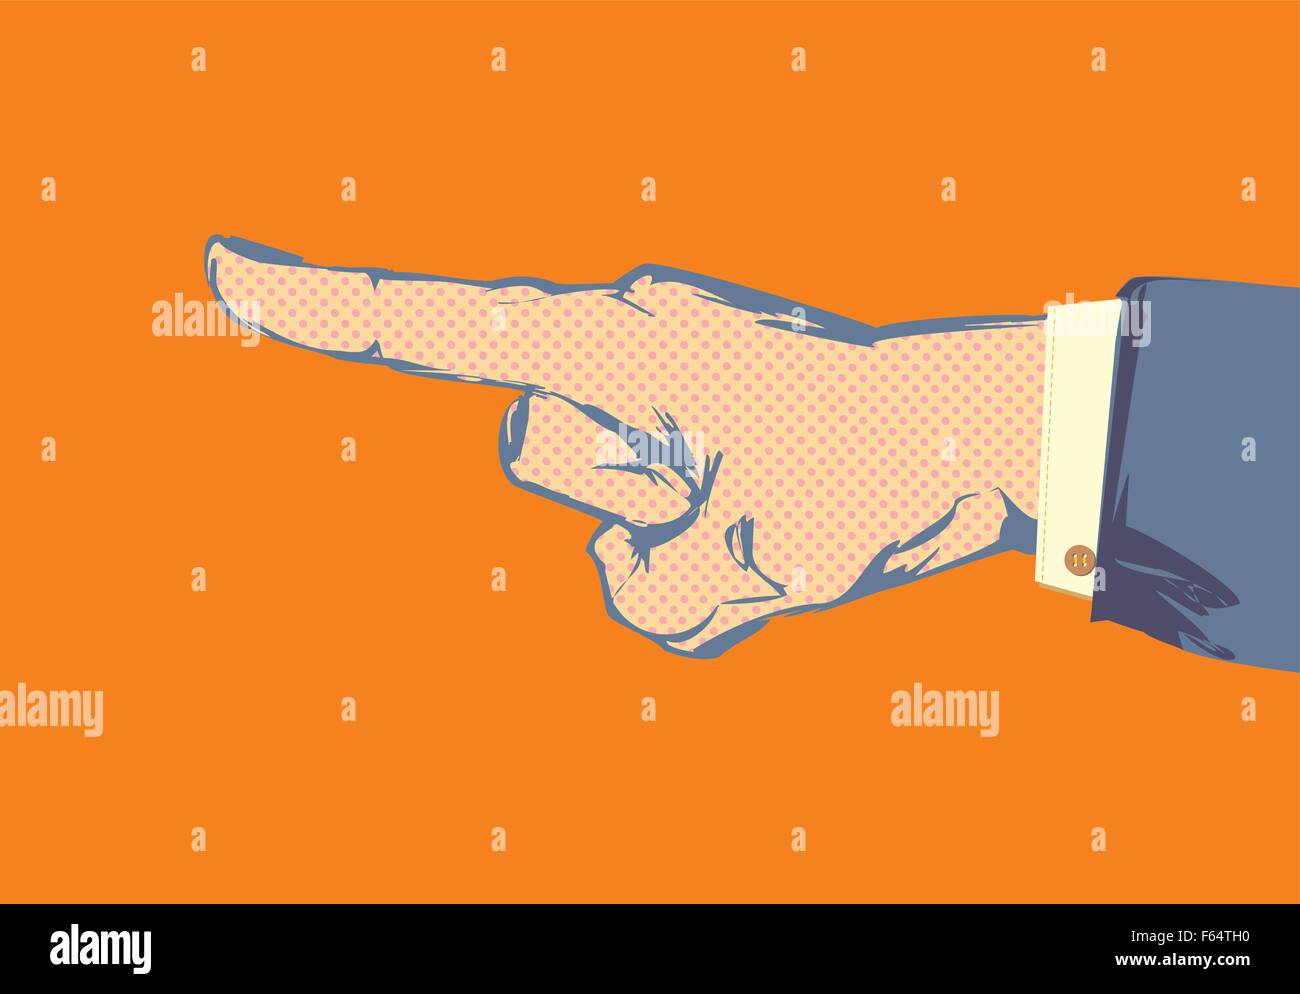 Sketched hand and finger pointing with suit jacket and shirt sleeve - Stock Vector